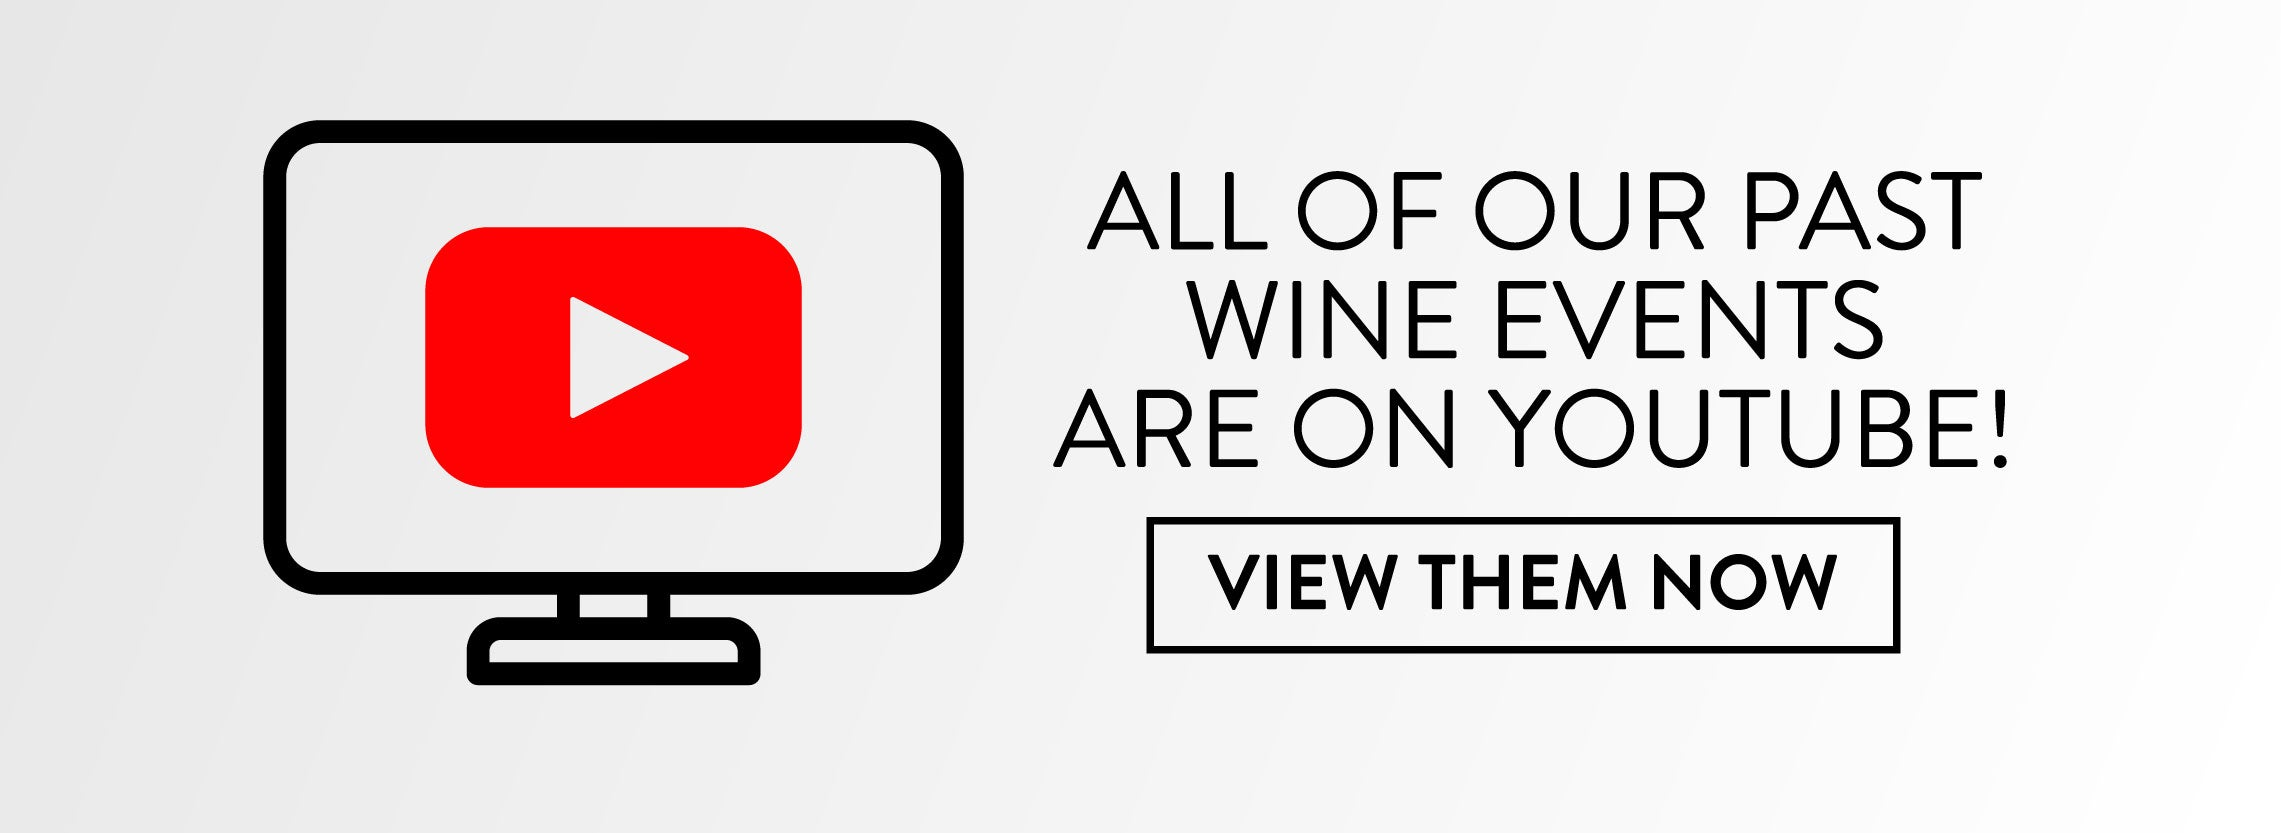 All Of Our Past Wine Events Are On Youtube!